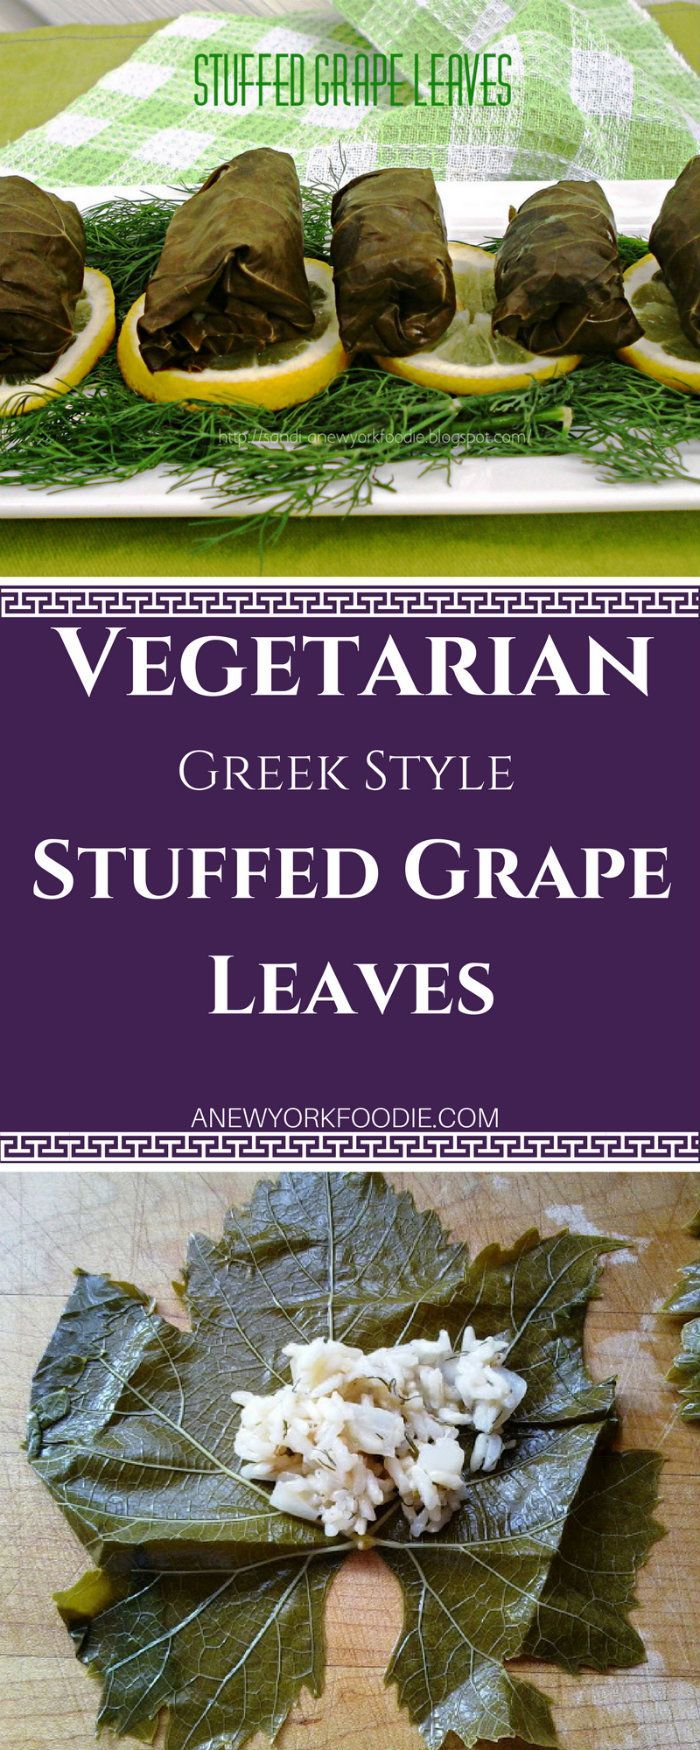 These Vegetarian Stuffed Grape Leaves are a perfect appetizer for your dinners or parties. Stuffed with cooked rice, dill, mint. fresh lemon juice and wrapped in a little grape leave. Serve them warm or cold. So delicious! #greek #appetizers #vegetarian